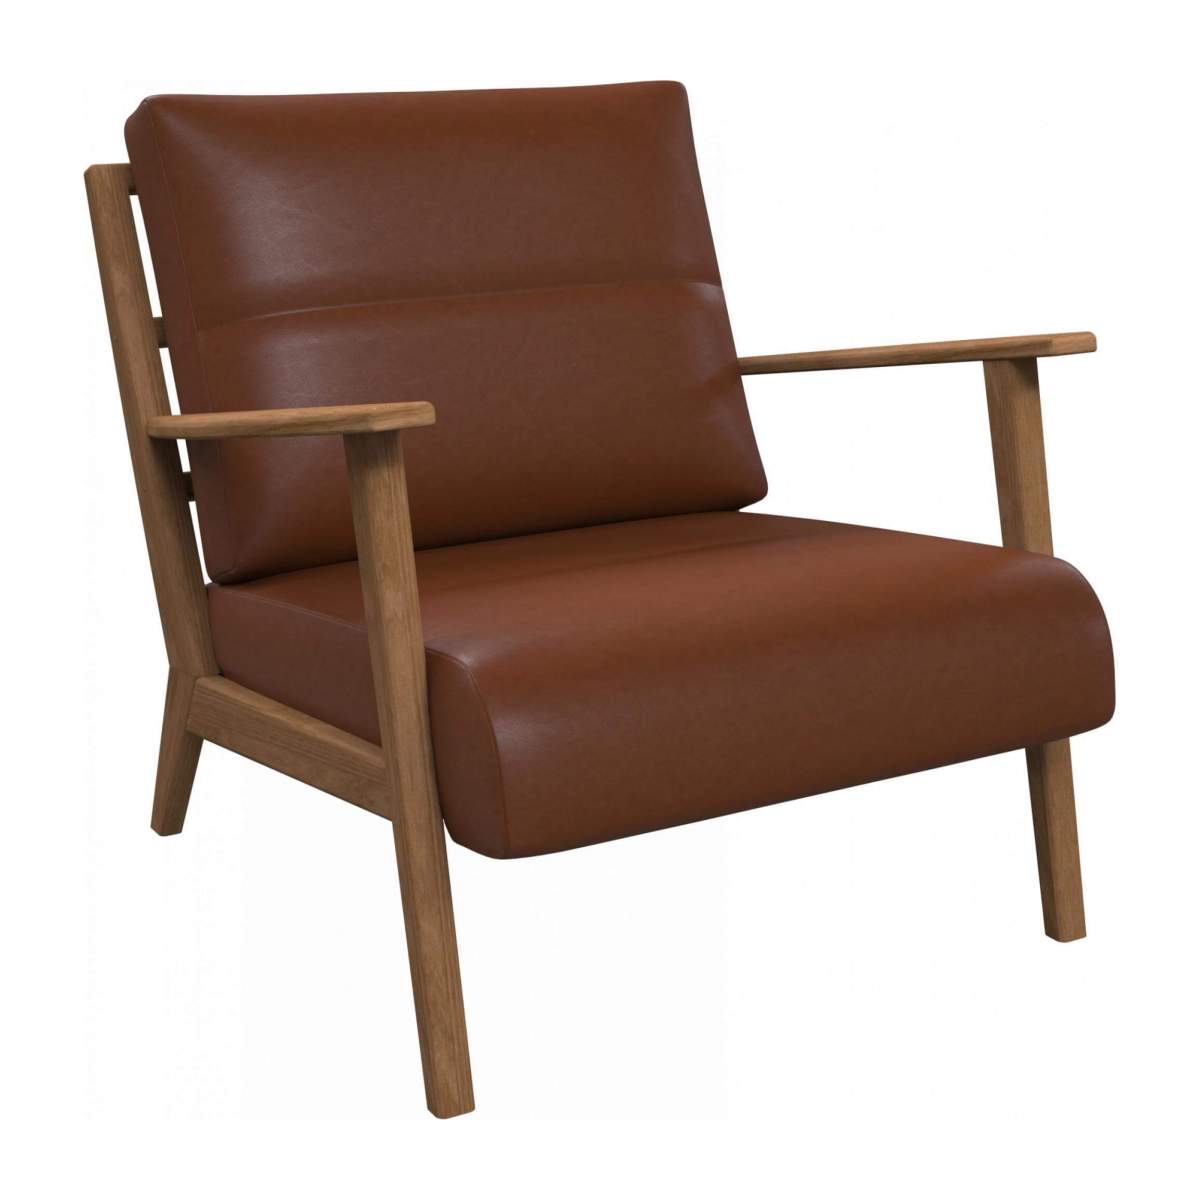 Armchair in Vintage aniline leather, old chestnut n°2